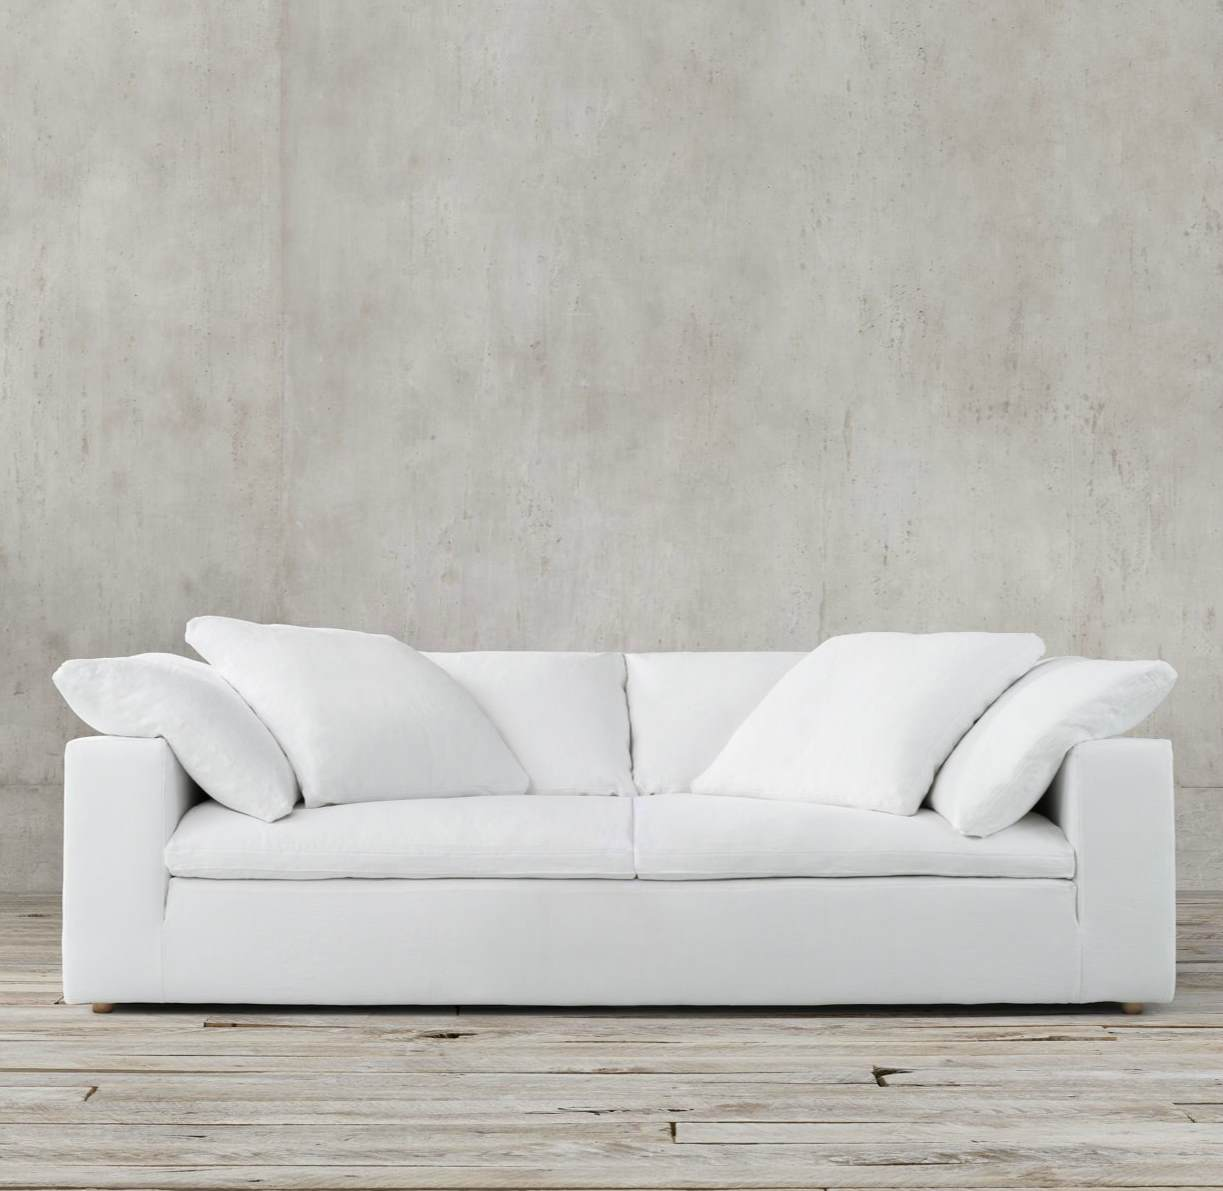 Slipcovered cushion sofa from Restoration Hardware